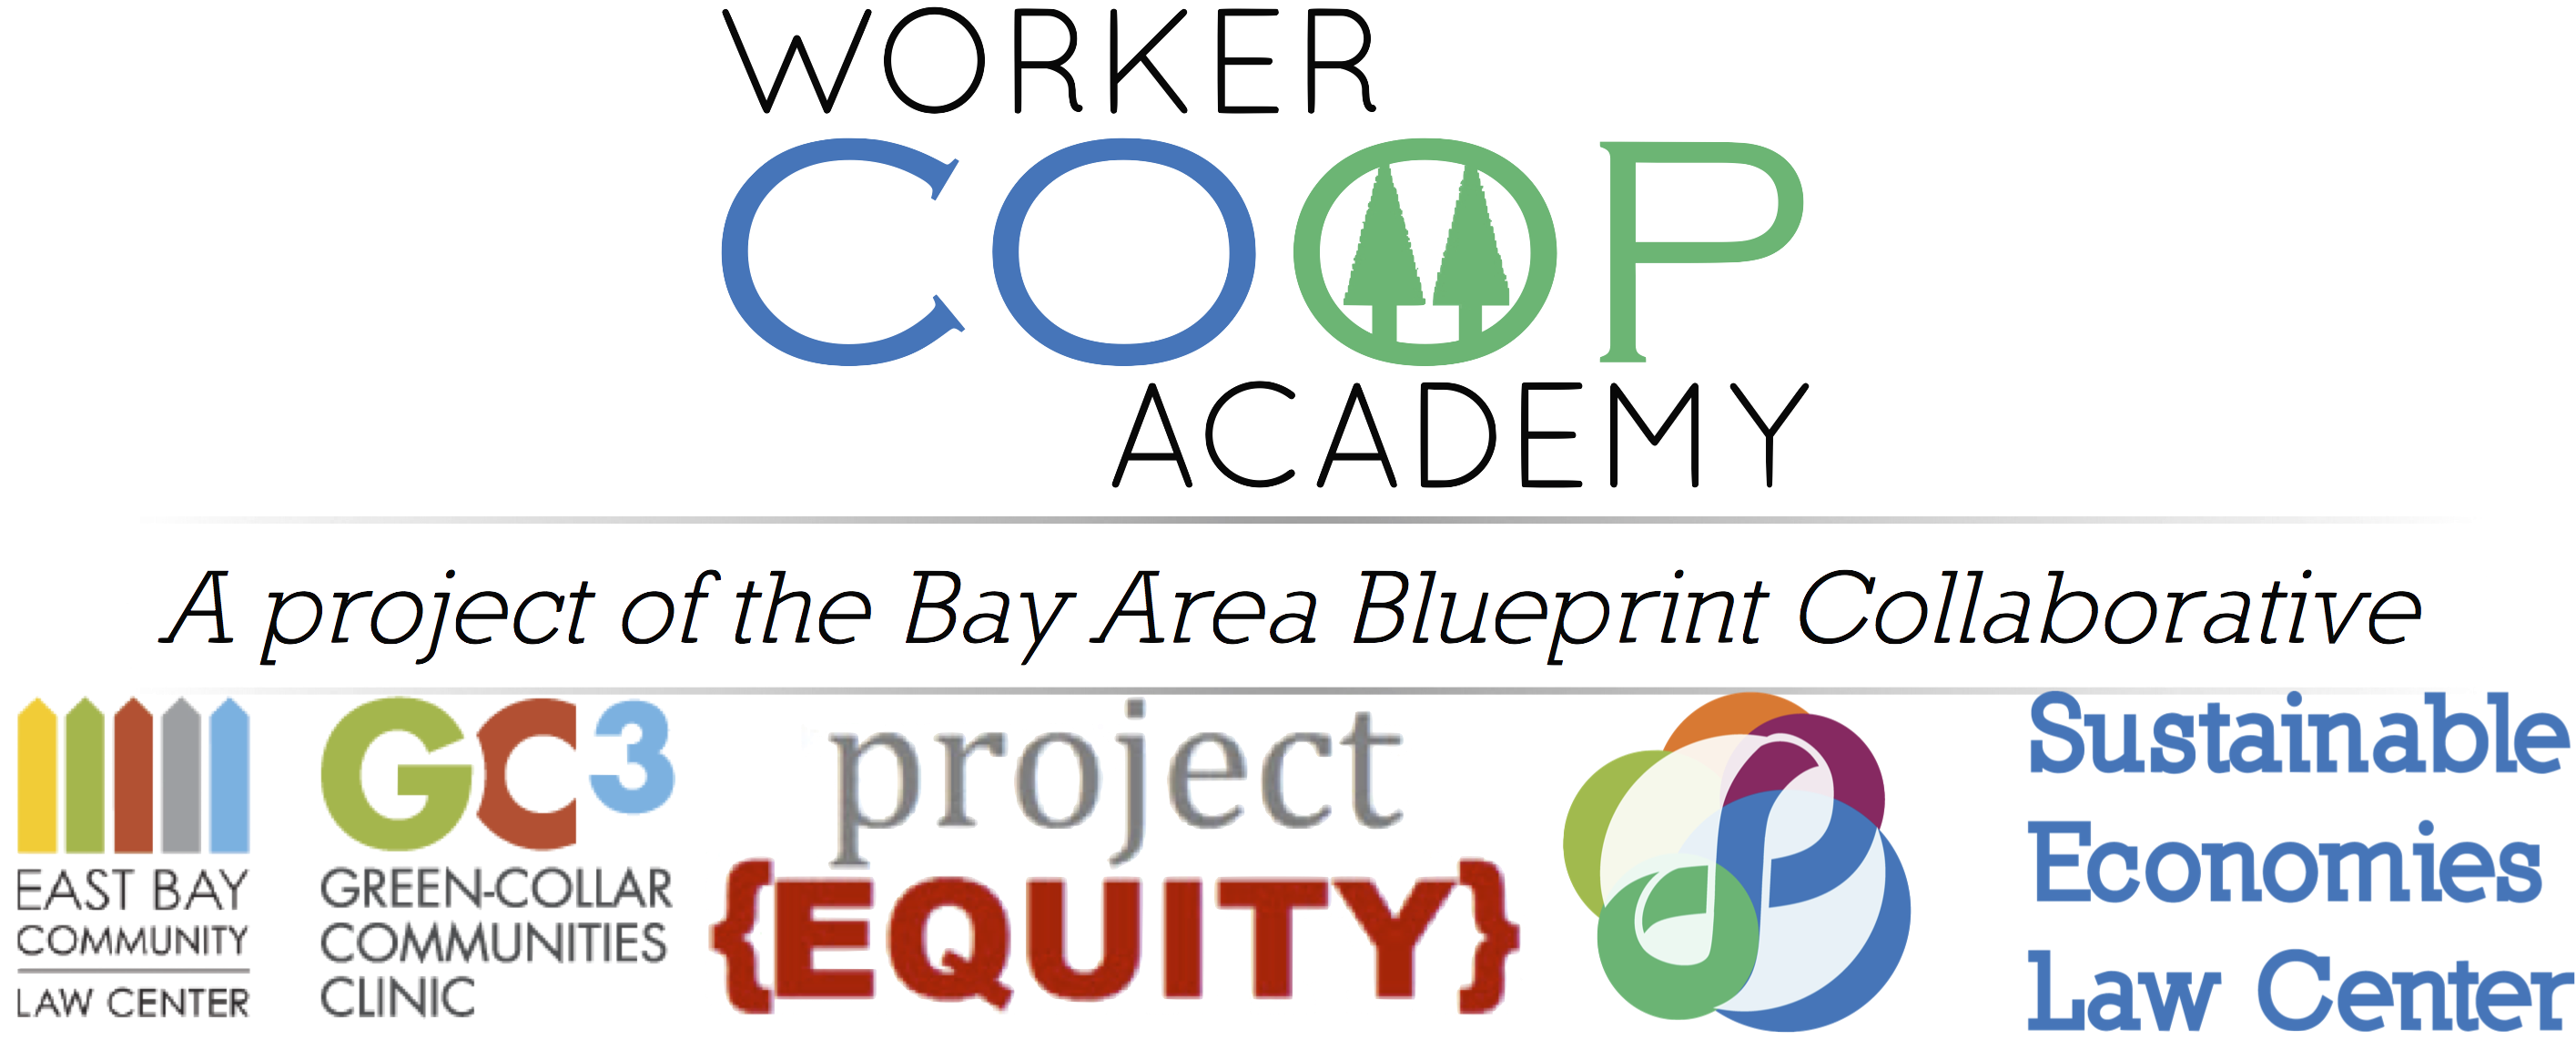 Worker Coop Academy! It begins with you!